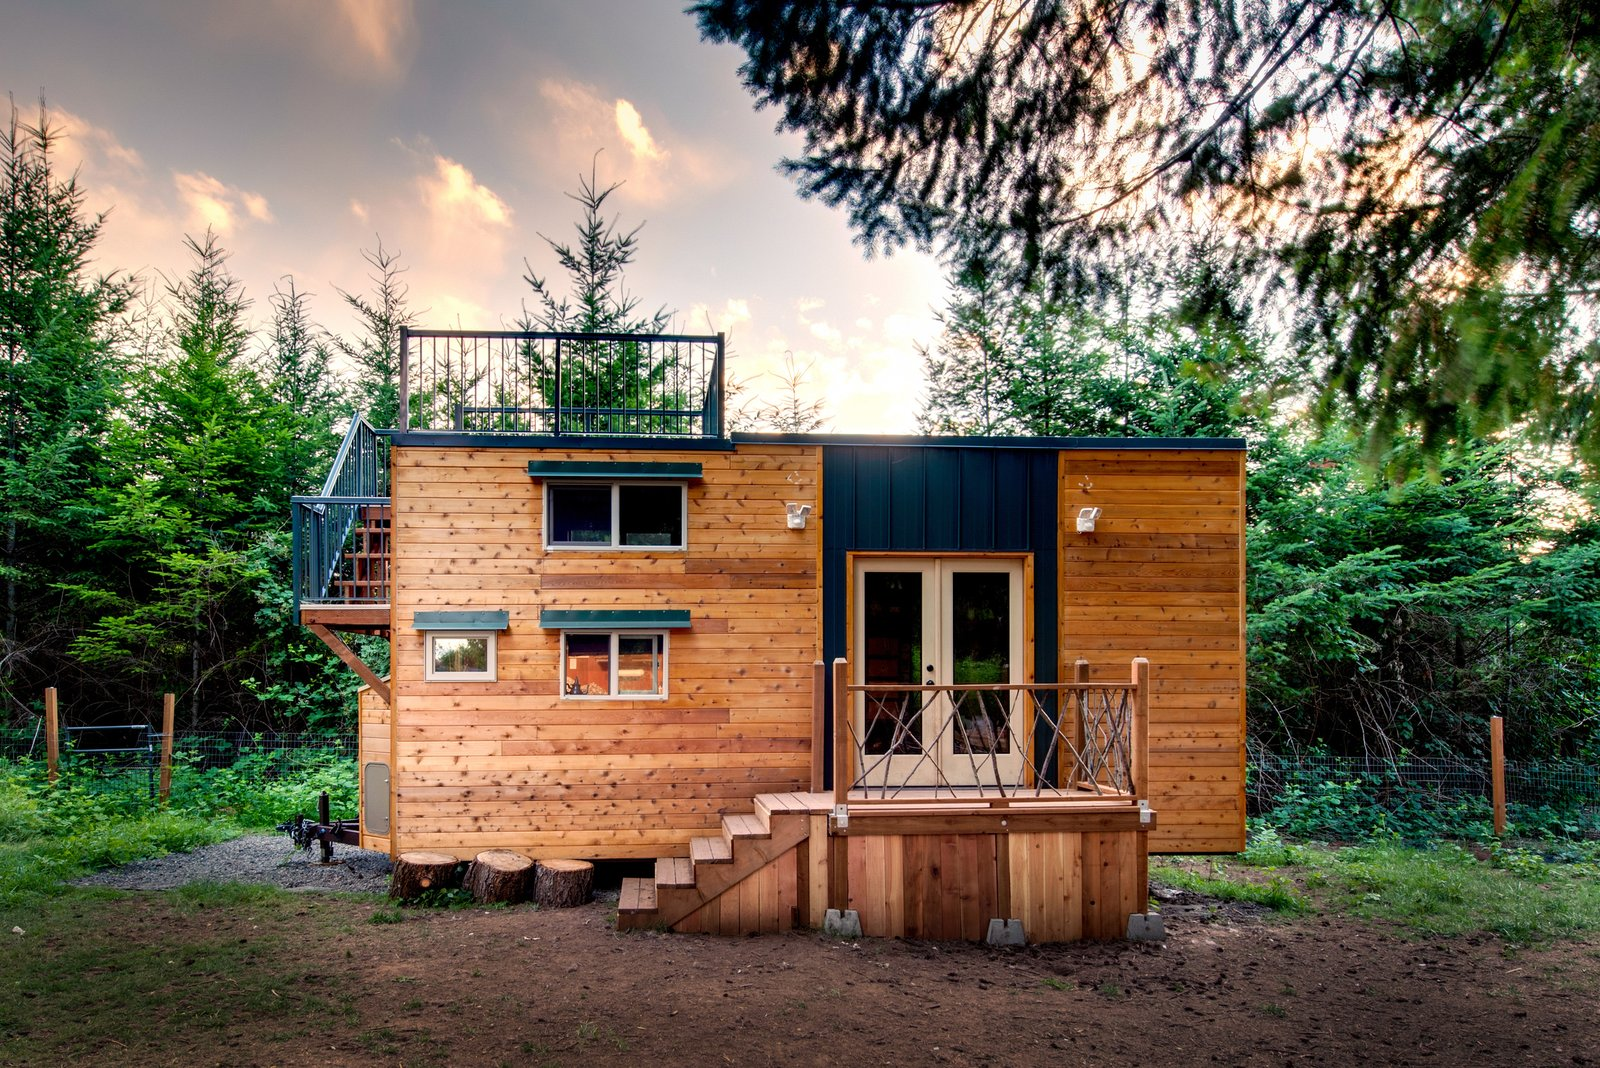 6 Tiny House Resources That Will Help You Downsize Your Life - Photo 4 of 7